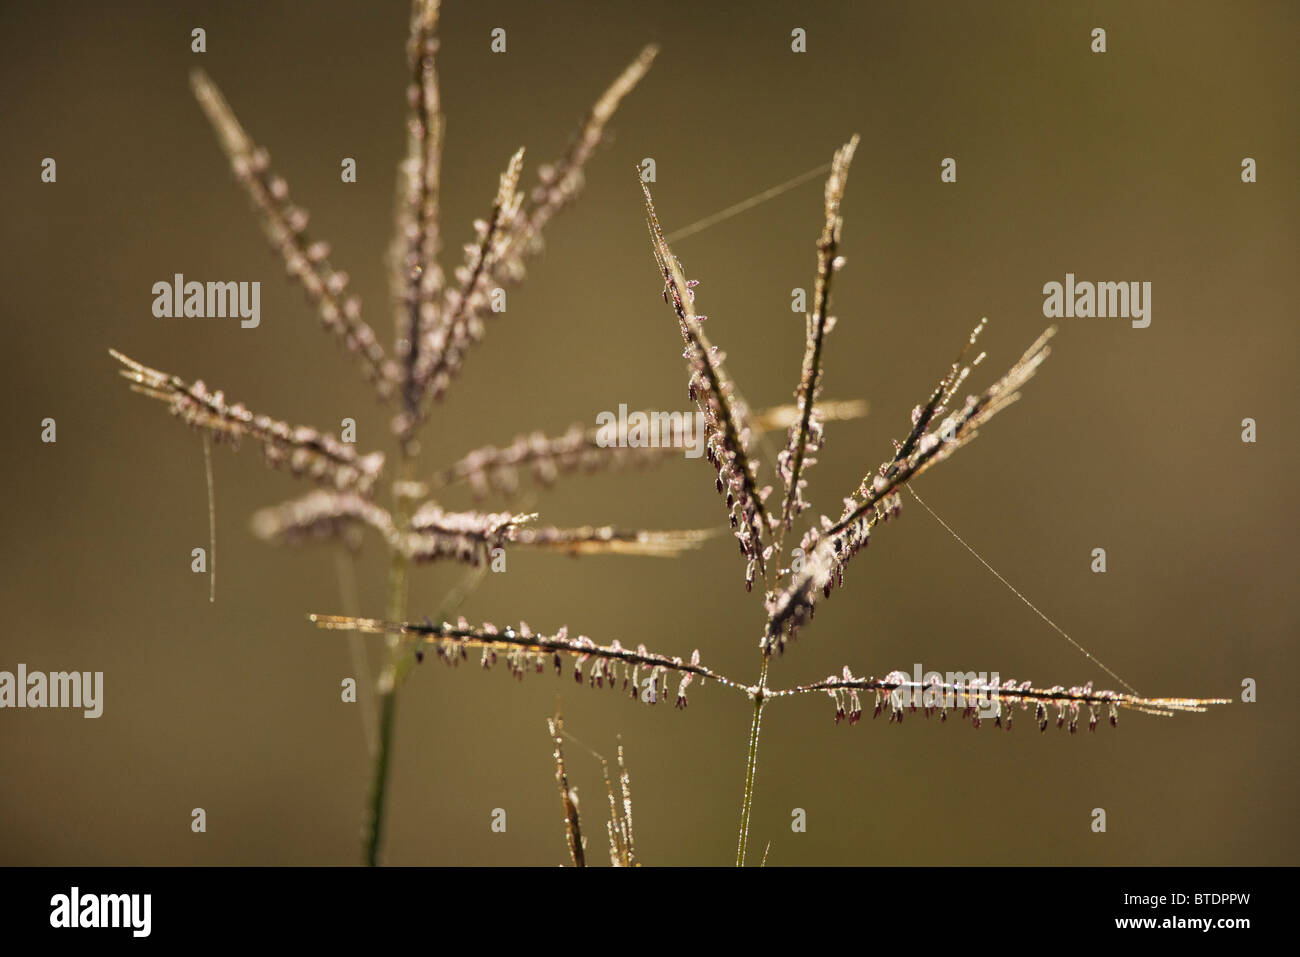 Backlit grass seed-heads with strands of spider silk - Stock Image